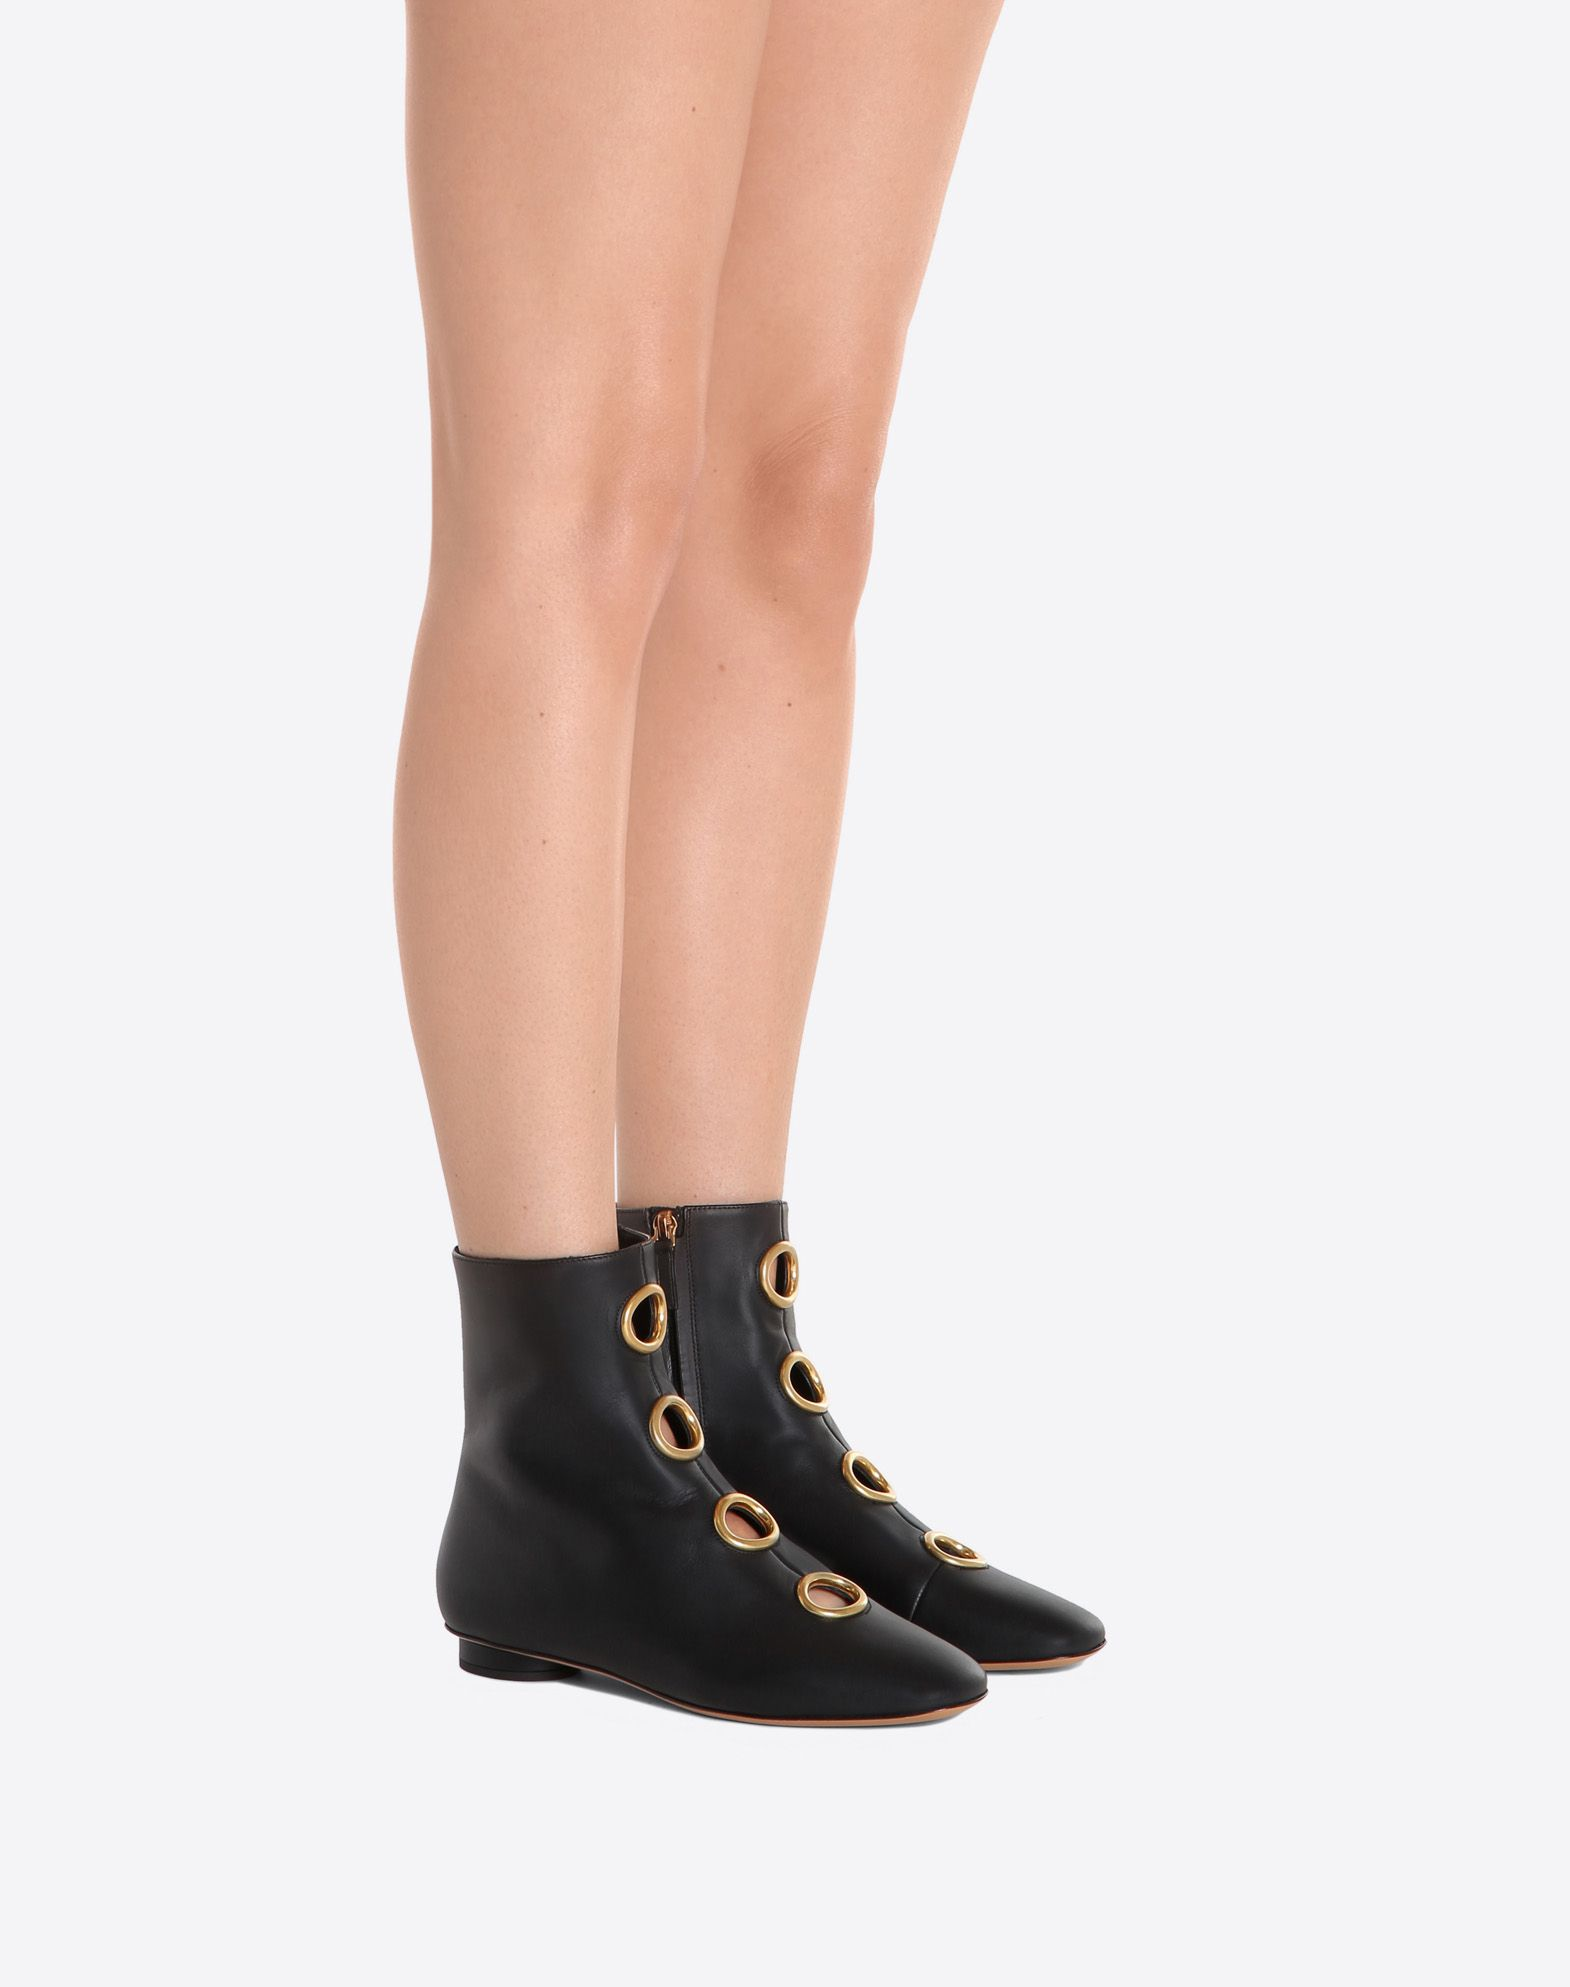 Valentino Garavani eyelet boots Cheap Sale Best Prices Clearance 2018 Sale Factory Outlet Cheap Genuine 07nTe